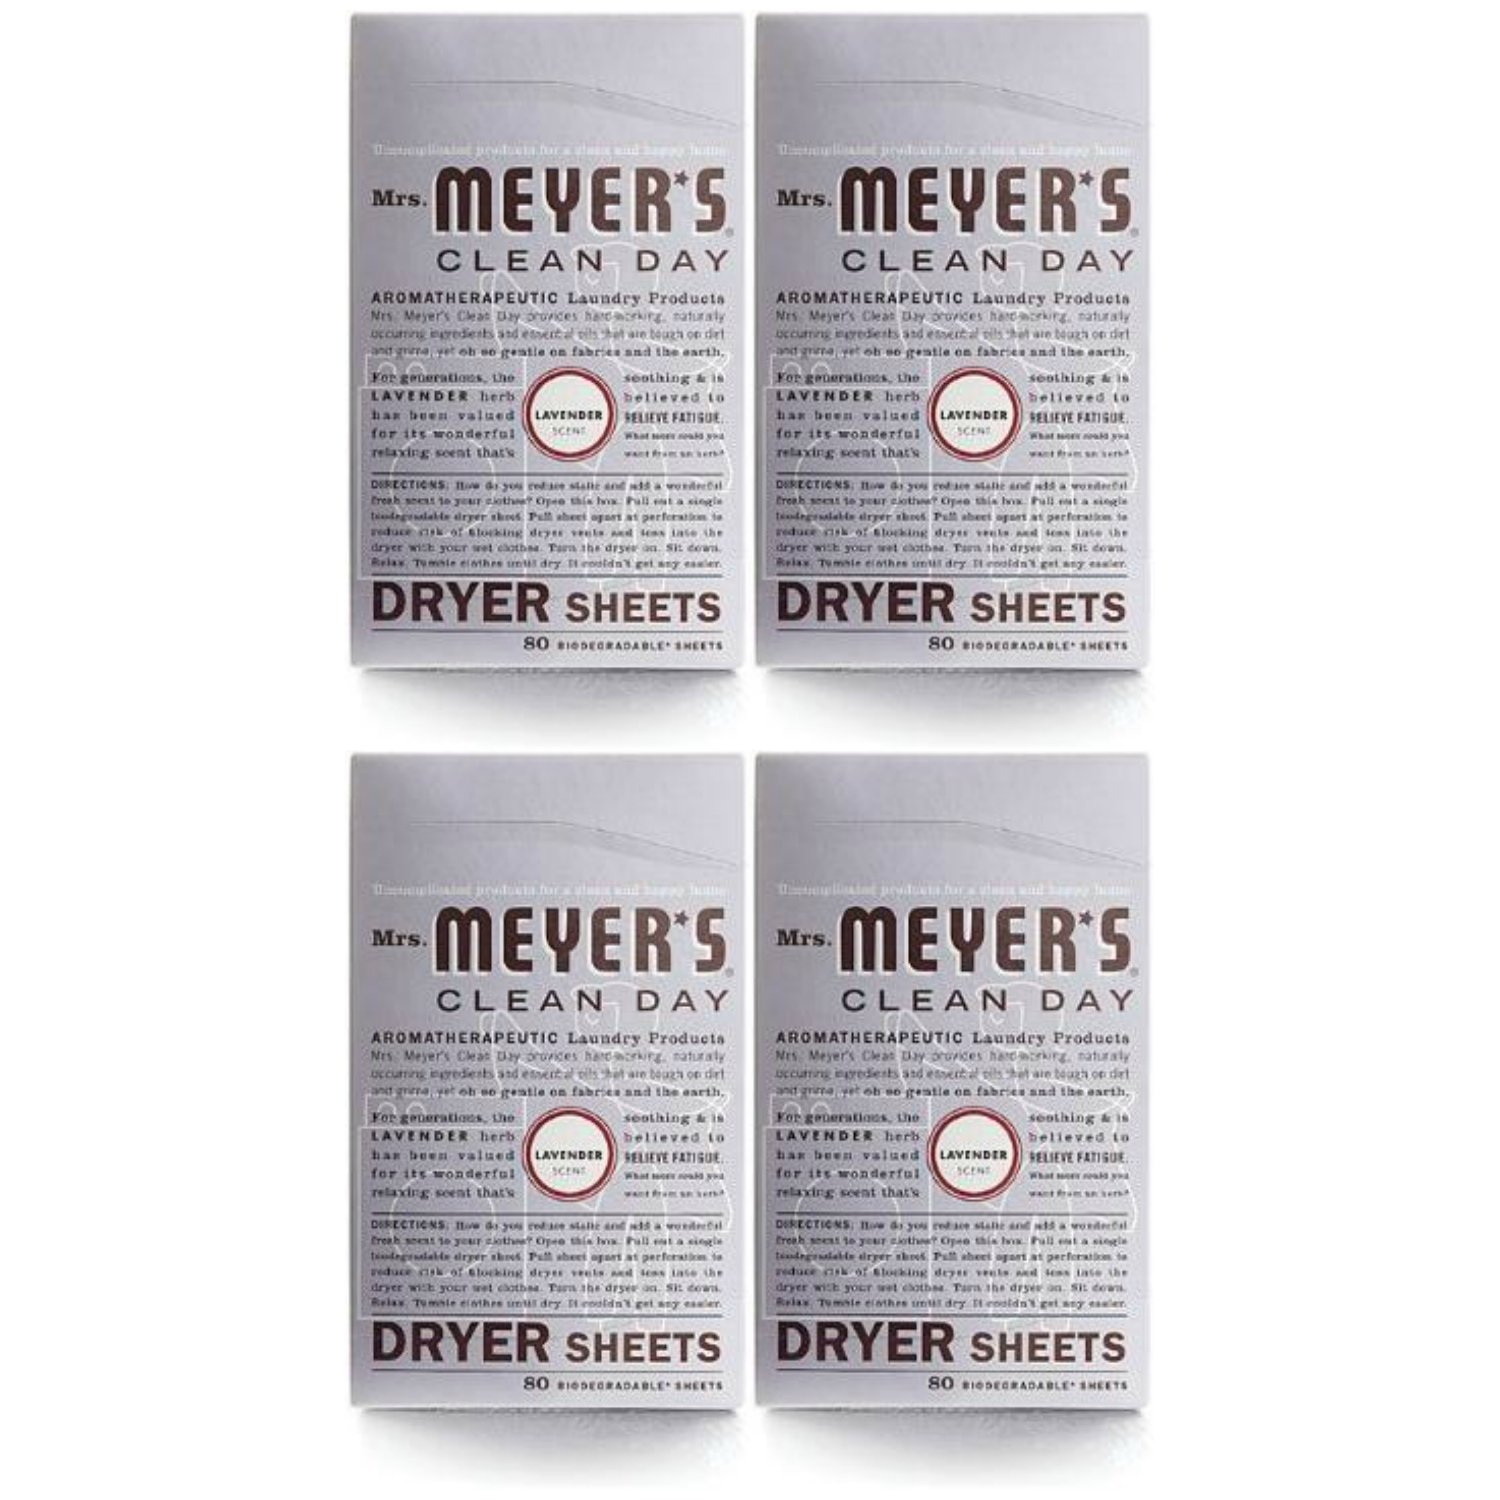 Mrs. Meyer's Clean Day Dryer Sheets - Lavender - 80 ct - 4 pk